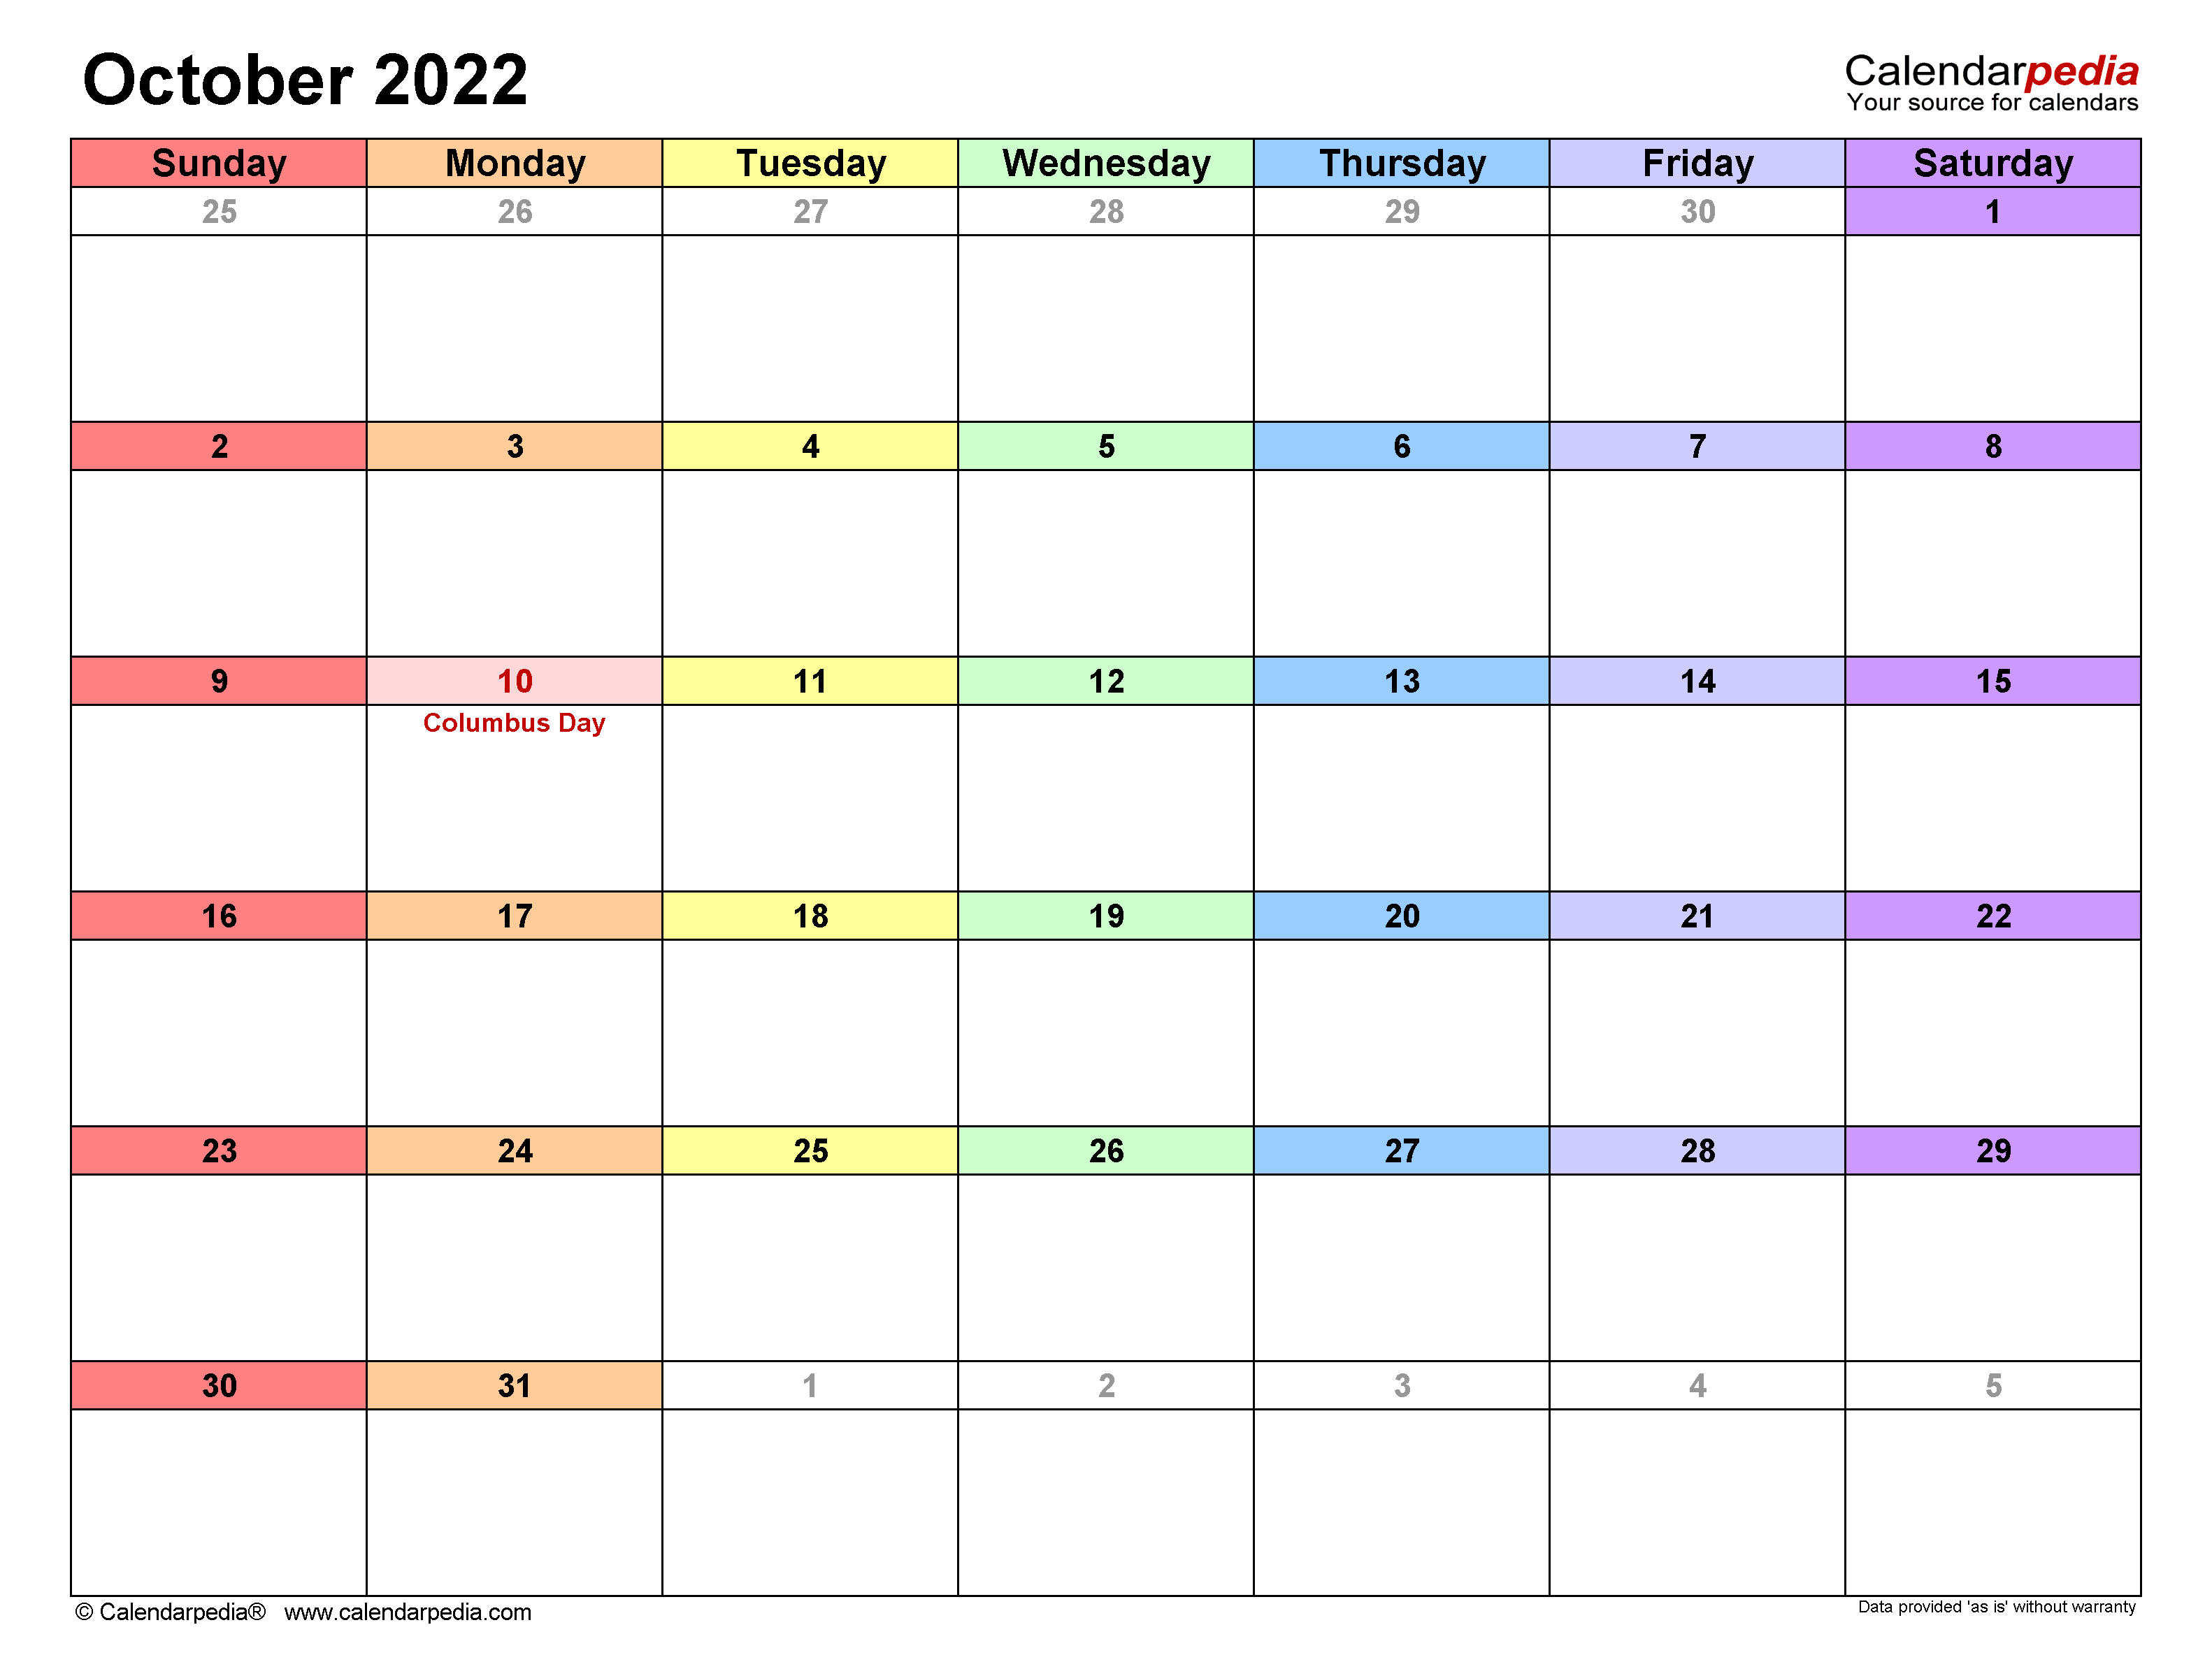 Oct 2022 Calendar With Holidays.October 2022 Calendar Templates For Word Excel And Pdf